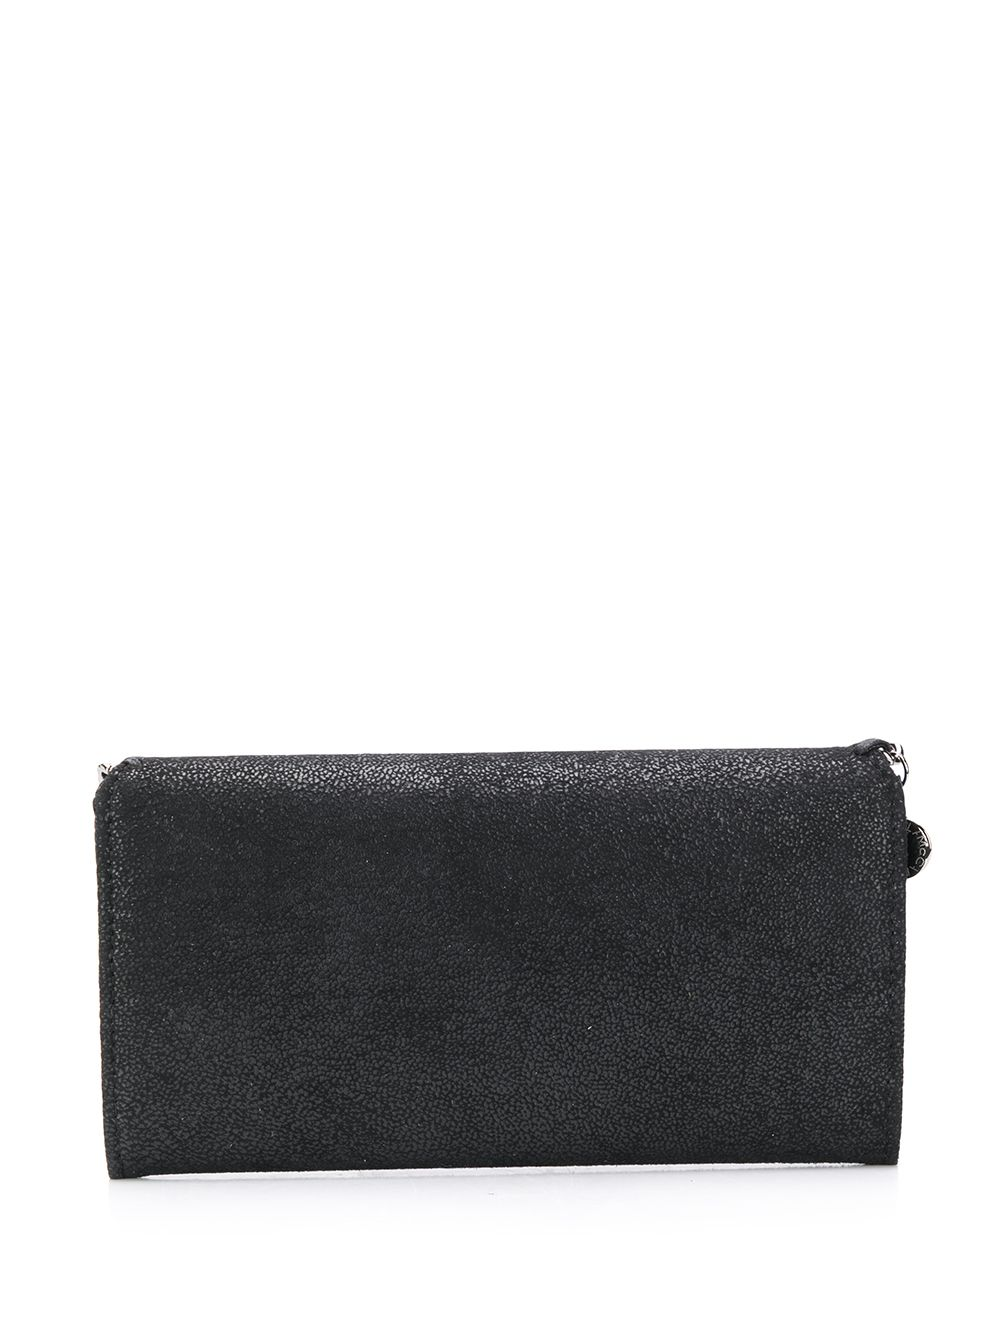 black Falabella continental wallet featuring a snap fastening STELLA MC CARTNEY |  | 430999-W91321000